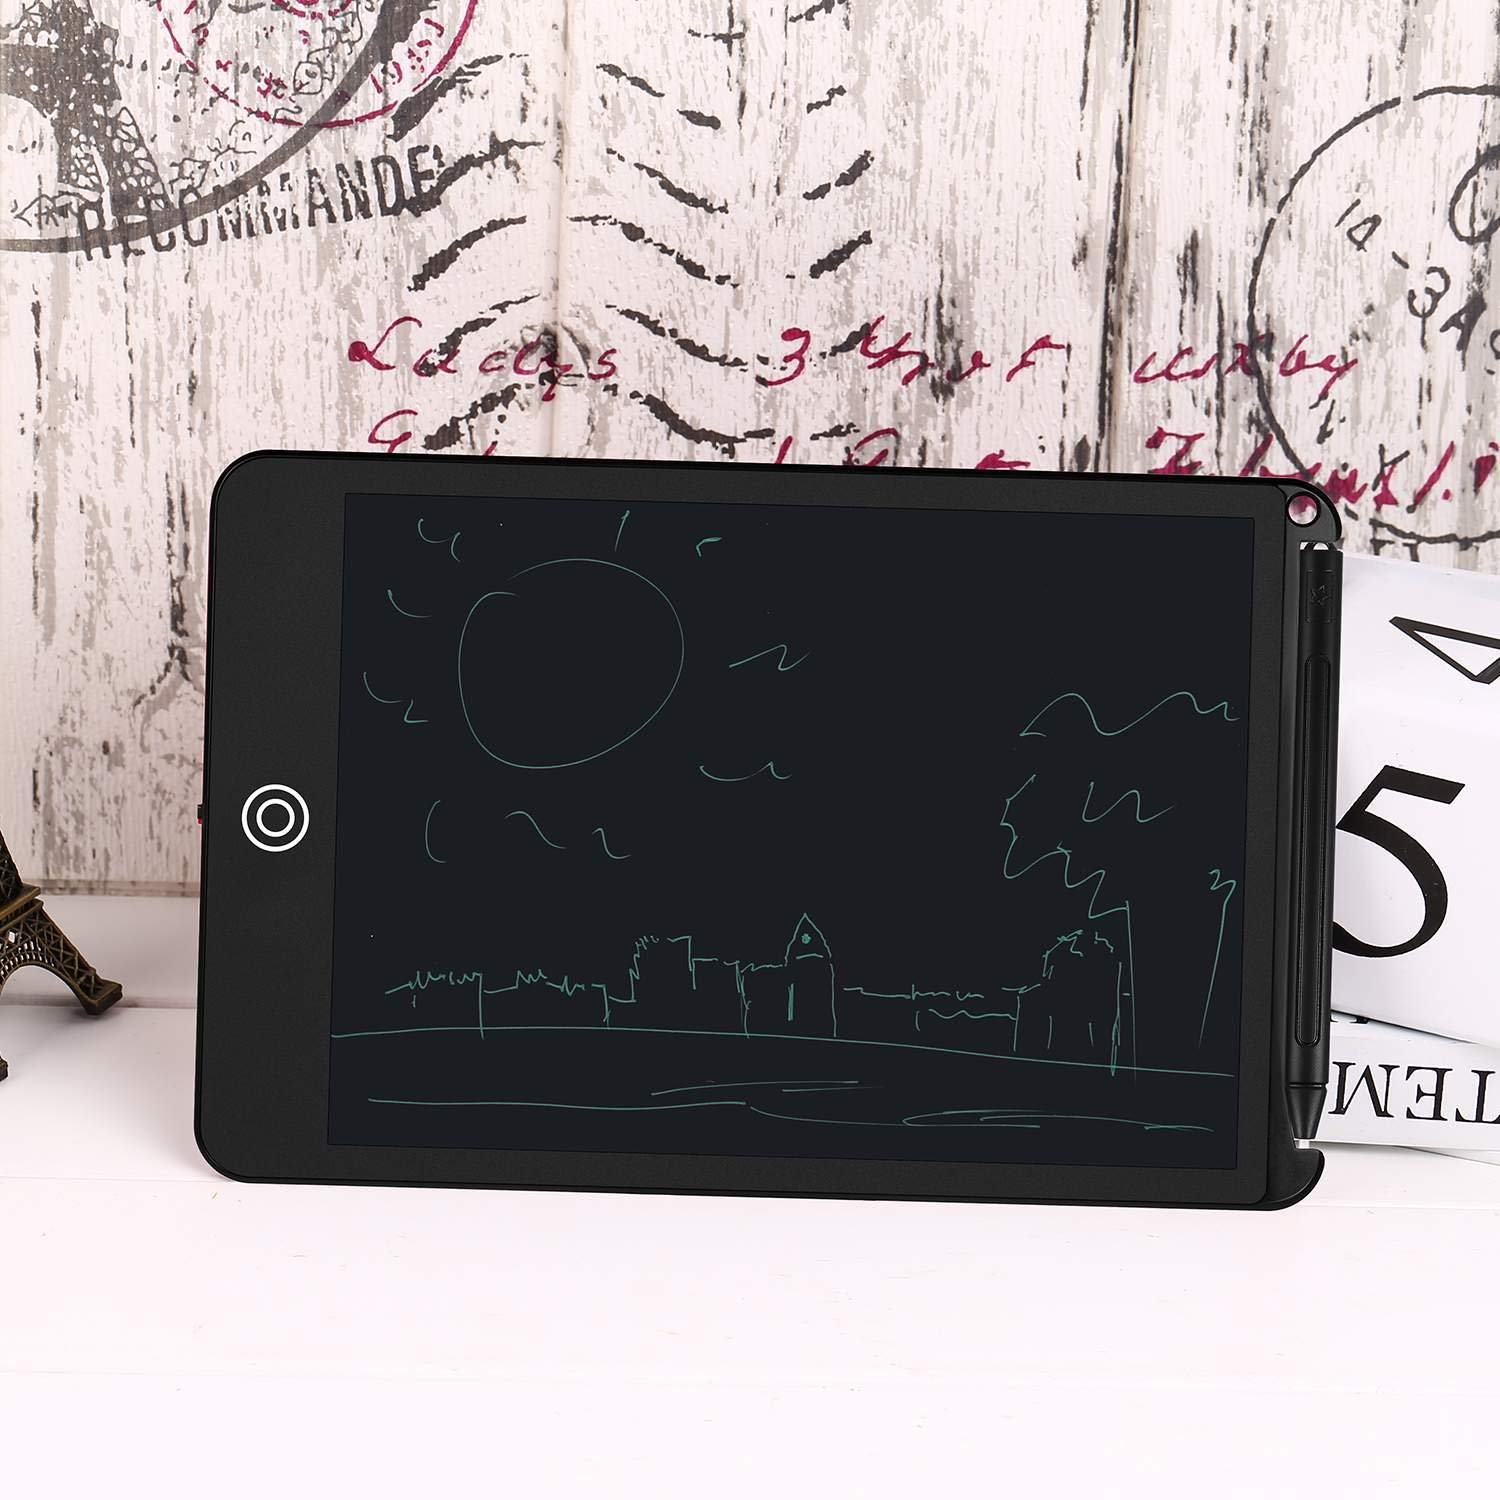 Hello22 8.5 LCD Writing Tablet Drawing Board Electronic Handwriting Doodle Pad with Stylus for Kids/&Adults School/&Office